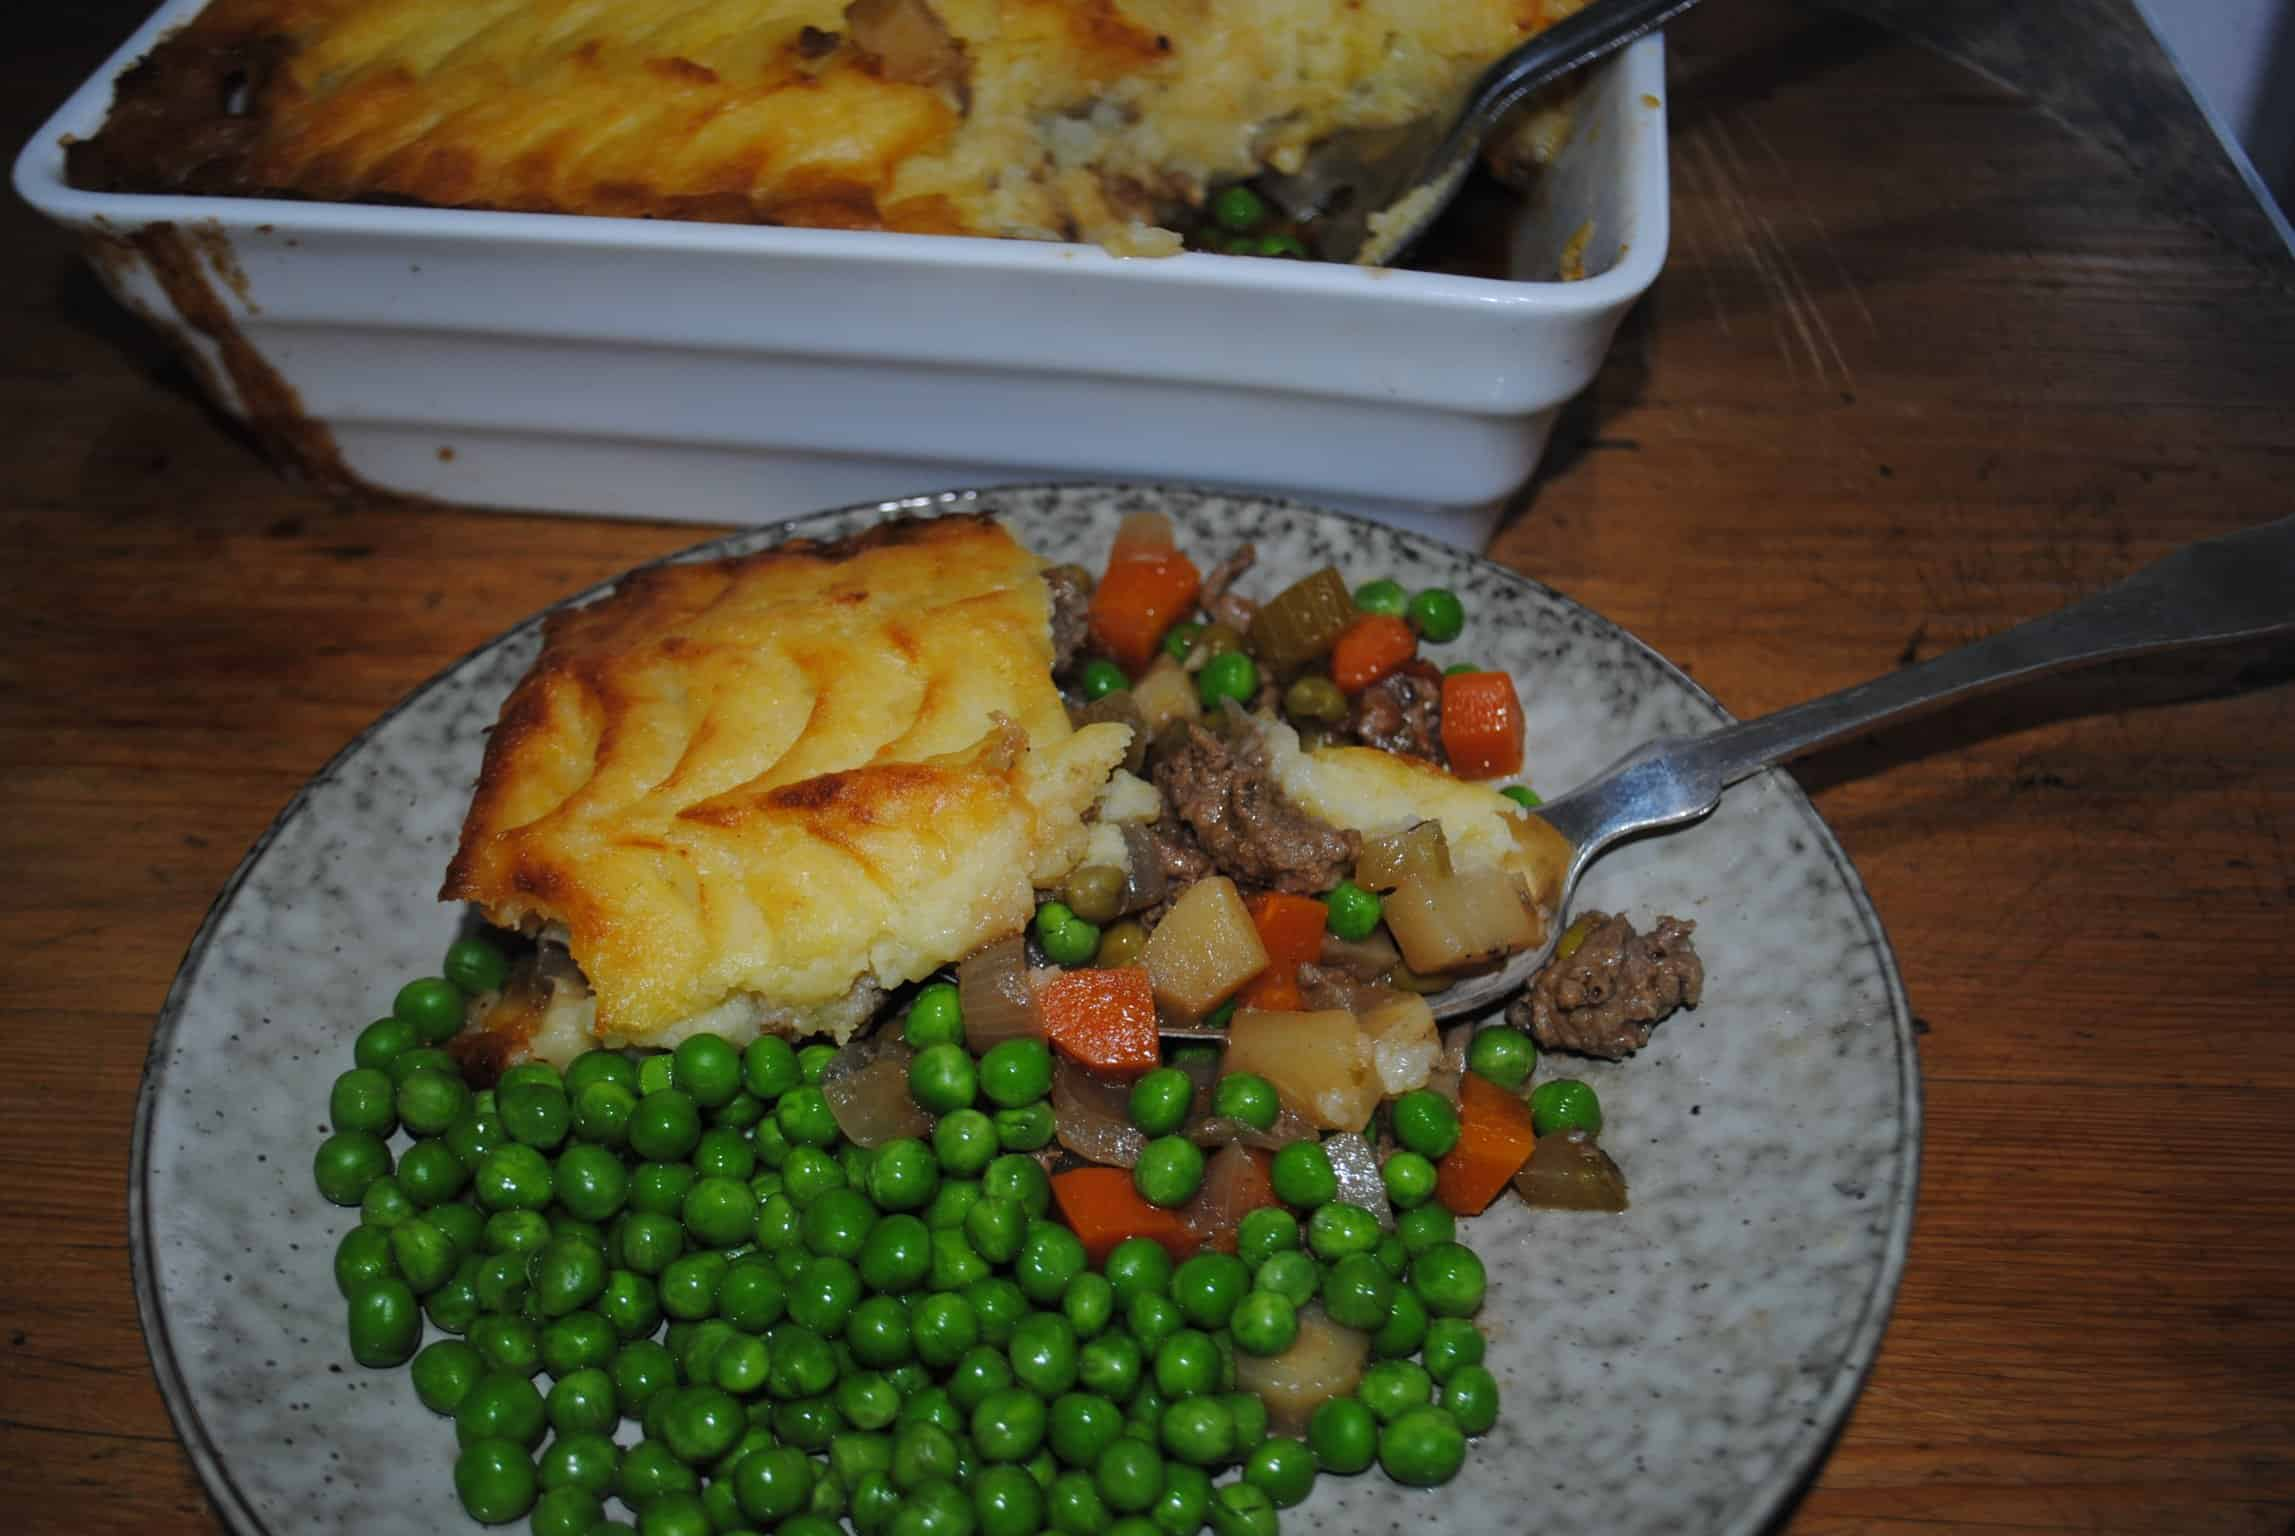 shepherds pie - in background with a serve on a plate with peas in the foreground